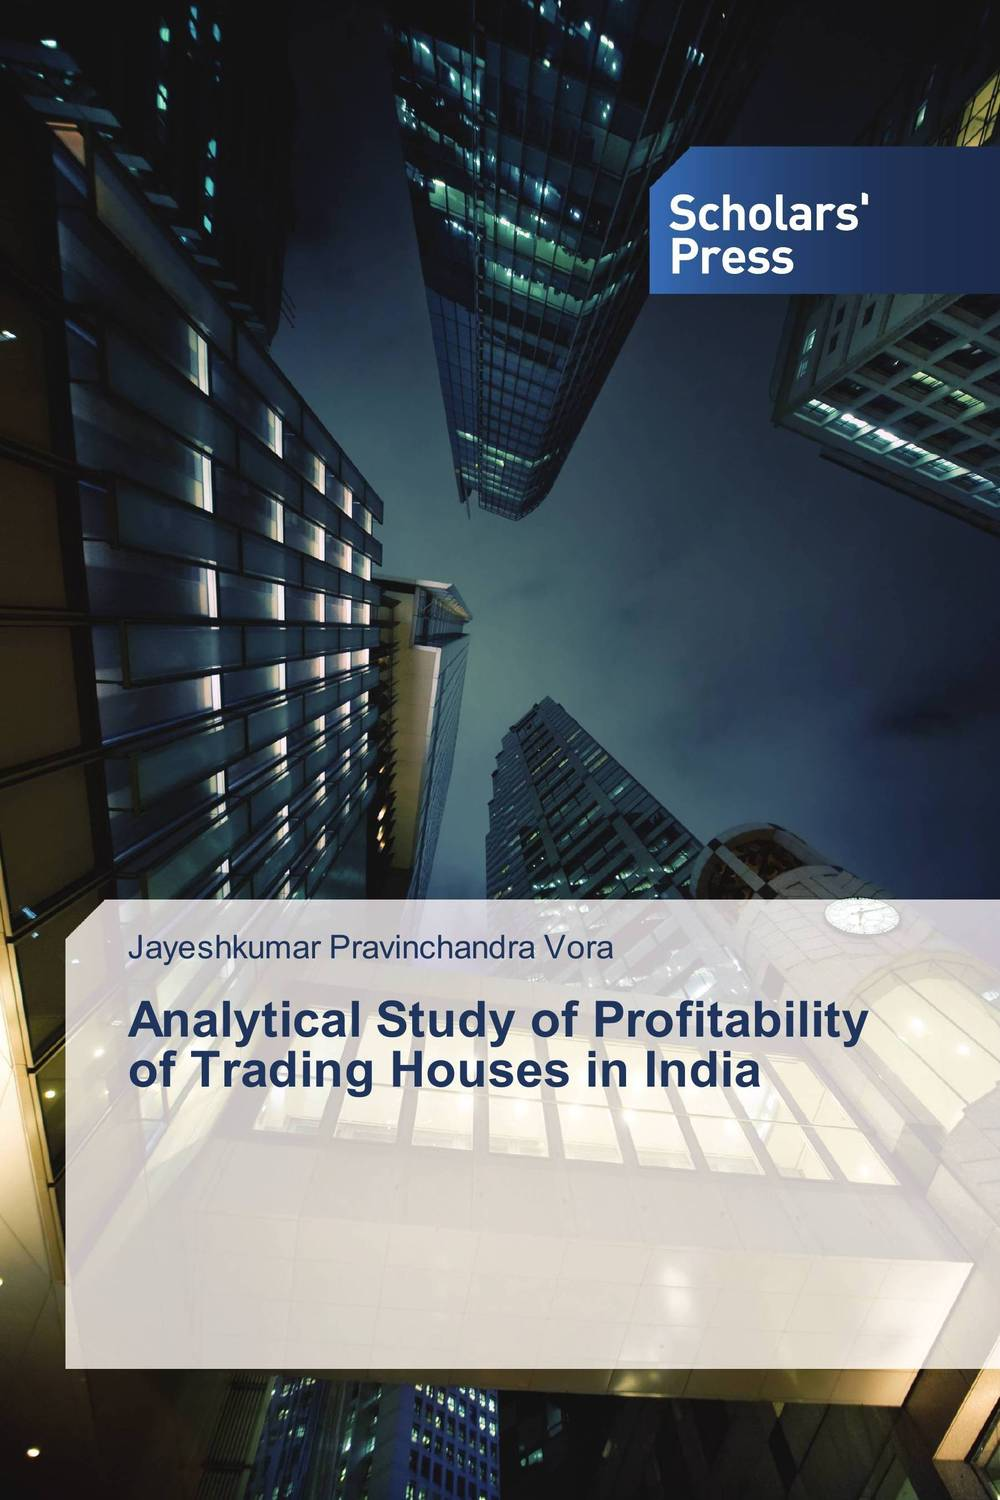 Analytical Study of Profitability of Trading Houses in India davis edwards risk management in trading techniques to drive profitability of hedge funds and trading desks